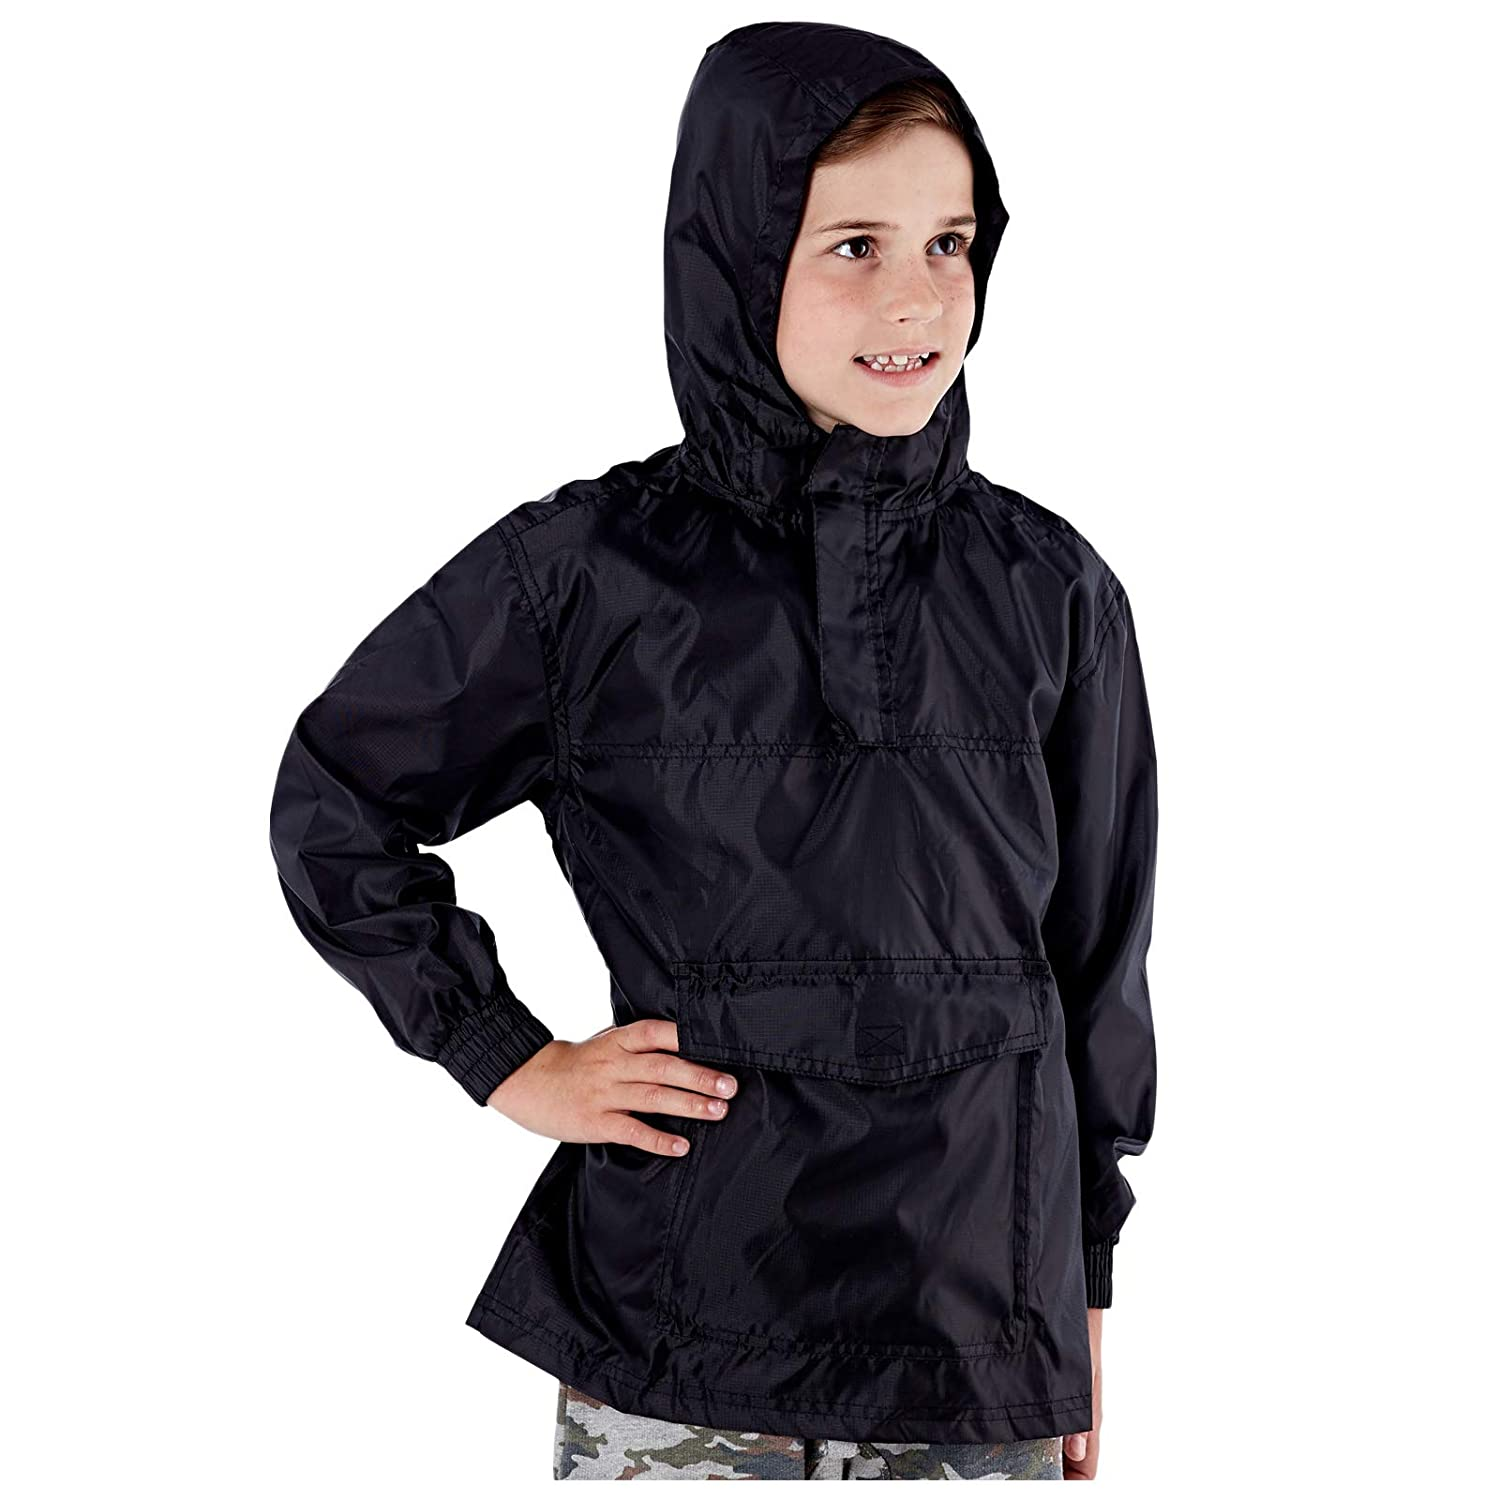 Children Waterproof Cagoule Boys Girls Kids Rain Cover up Hooded pac mac anorak